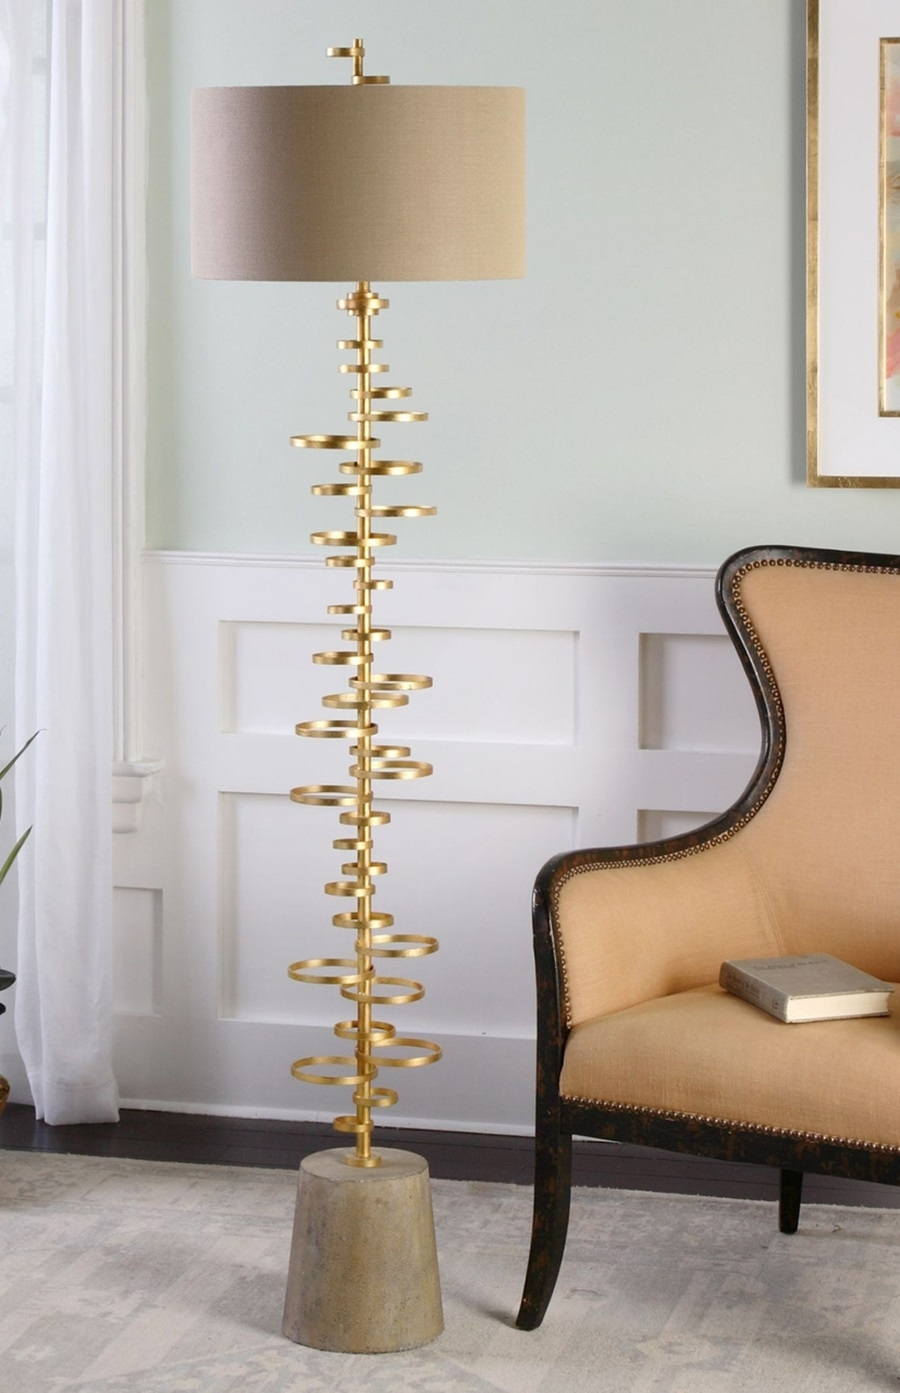 Lamp : Modernloor Lampsor Living Room Wayfair With Table Tray Gold Pertaining To Wayfair Living Room Table Lamps (#6 of 15)